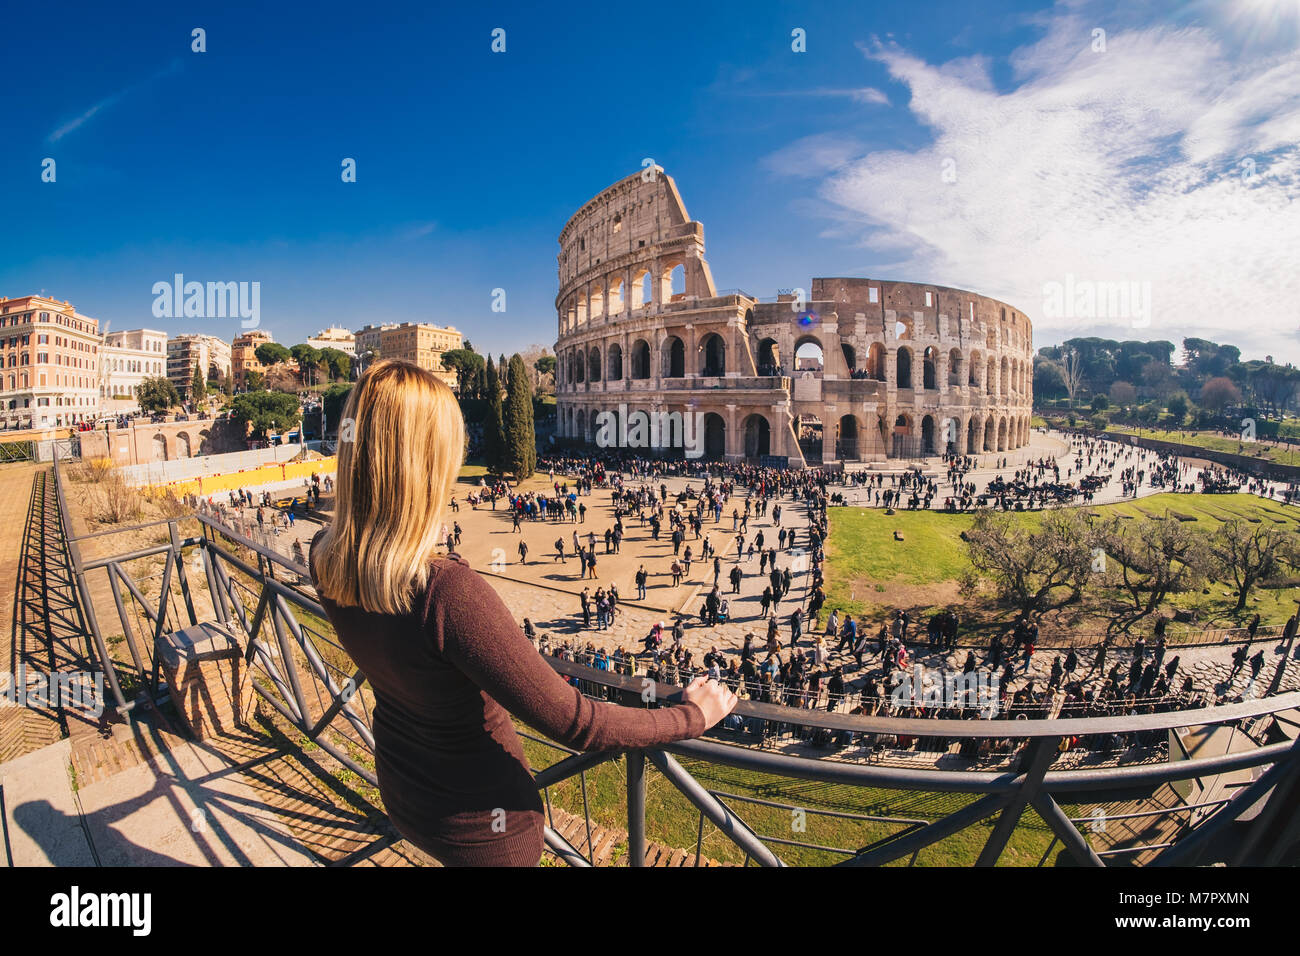 Woman tourist enjoying the view of the Roman Colosseum in Rome, Italy - Stock Image